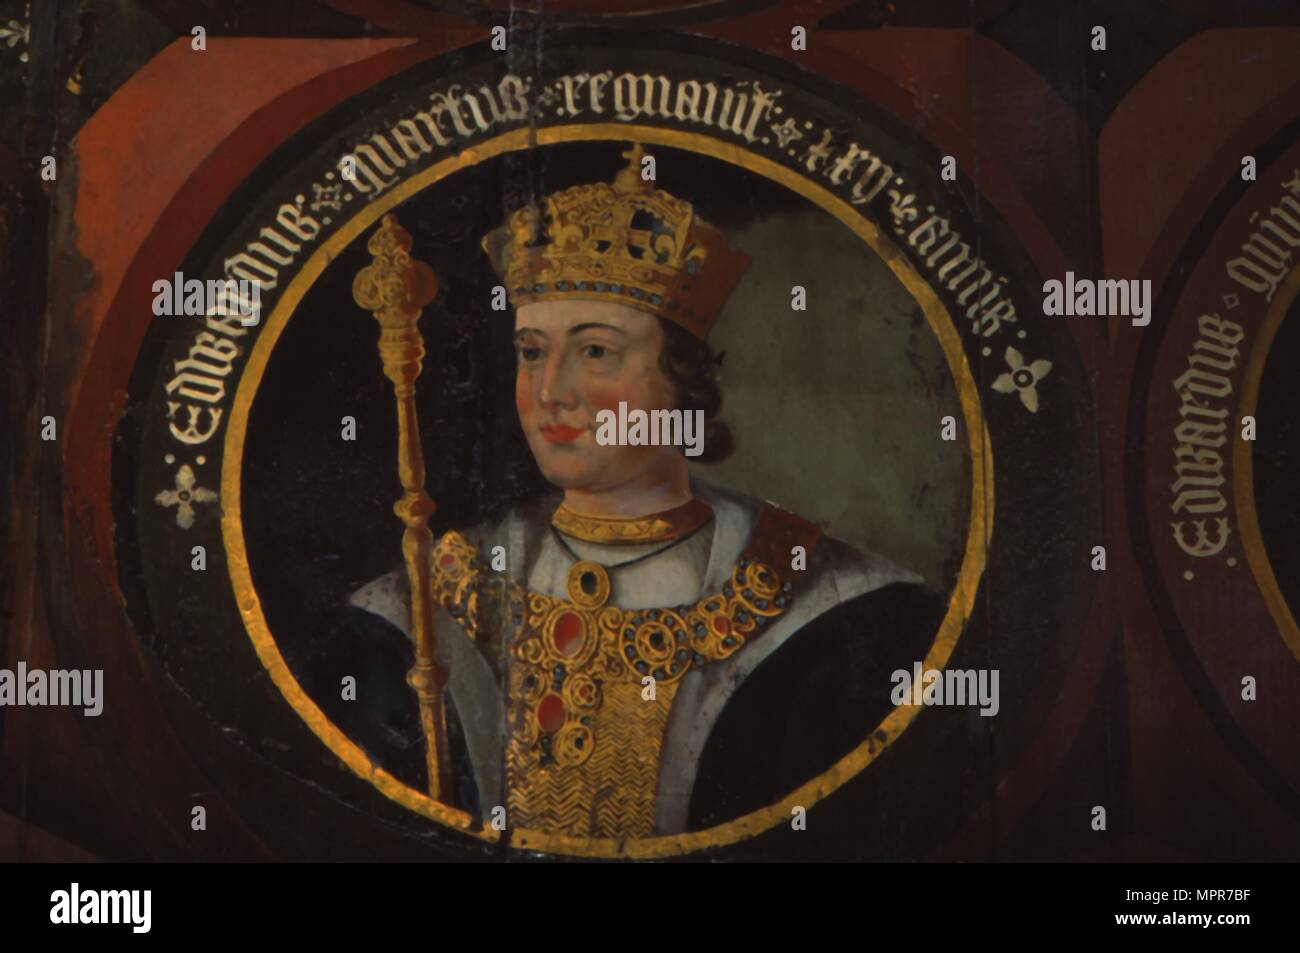 King Edward IV, (1442- 1483), circa mid 16th century. Artist: Unknown. - Stock Image